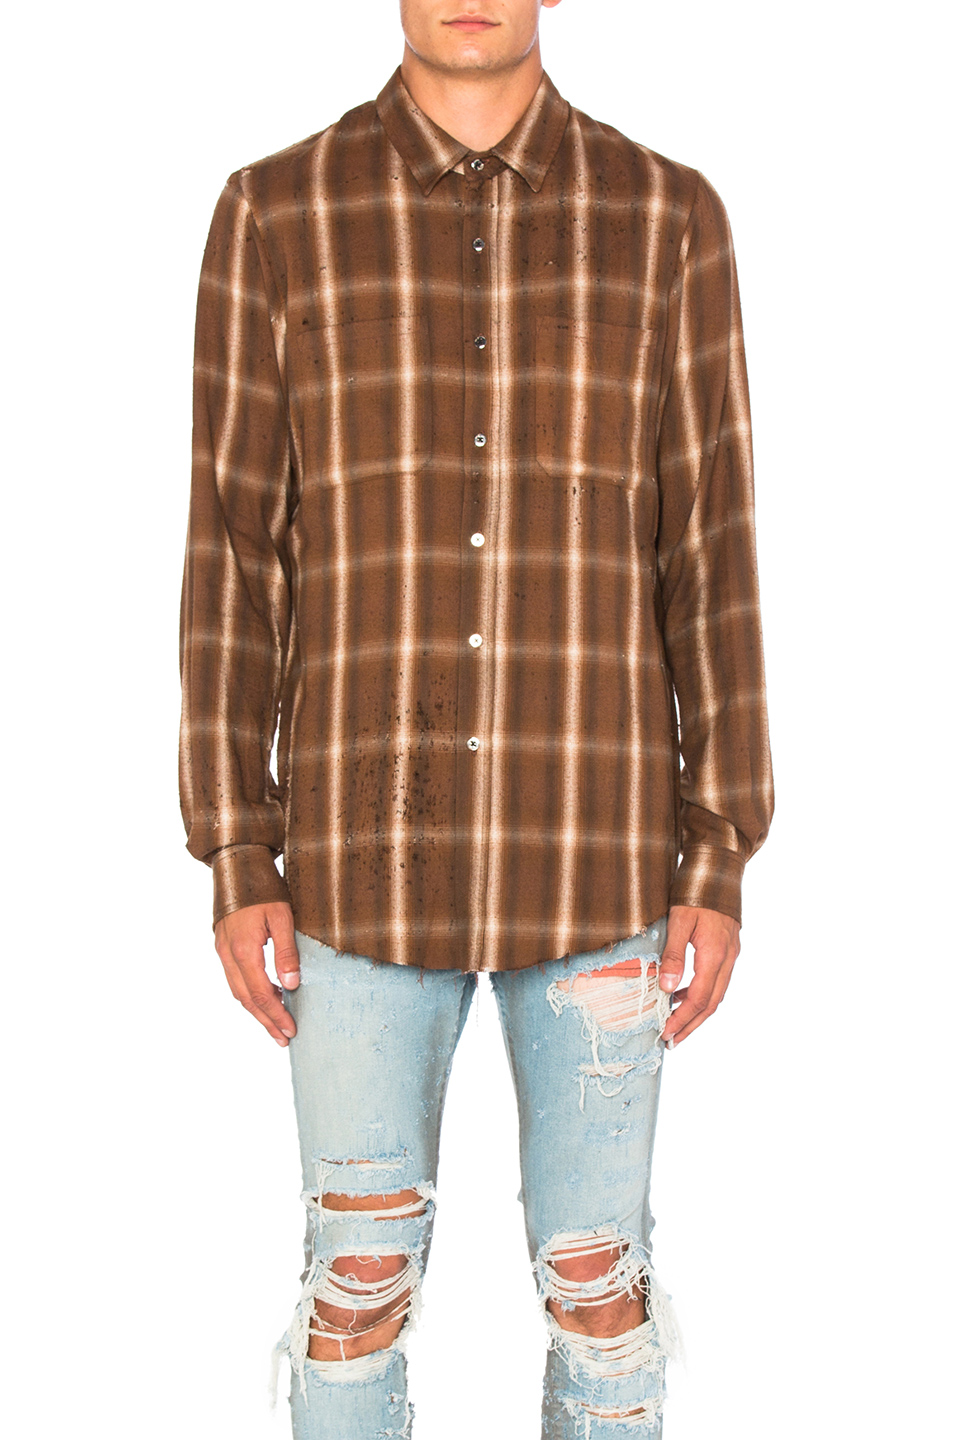 Amiri Shotgun Plaid Shirt in Brown,Checkered & Plaid